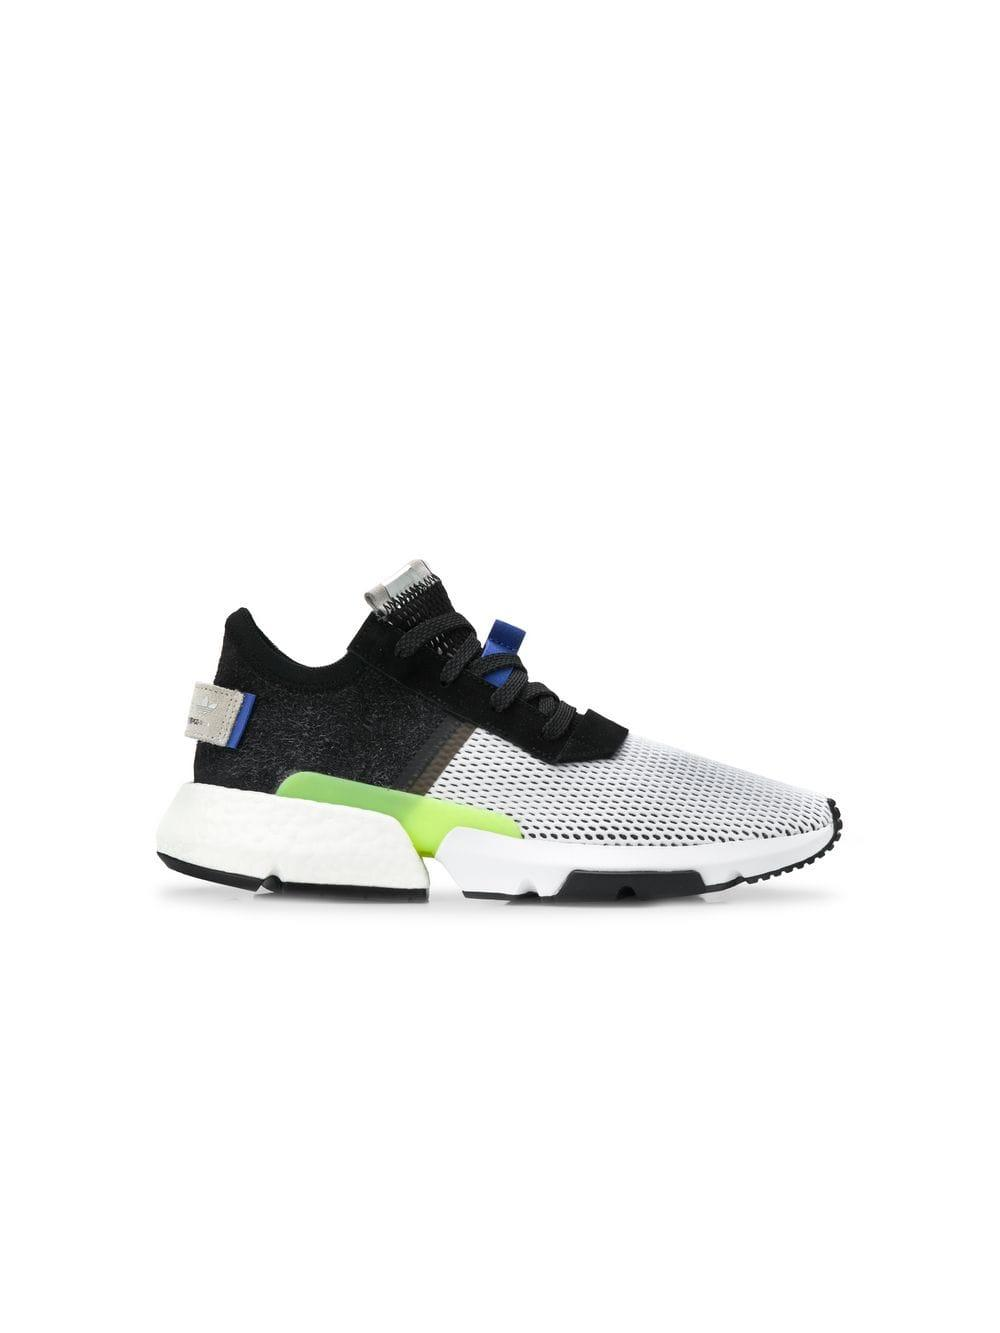 9ad0135dc494c adidas White And Black Pod S31 Mesh Sneakers in White for Men - Lyst